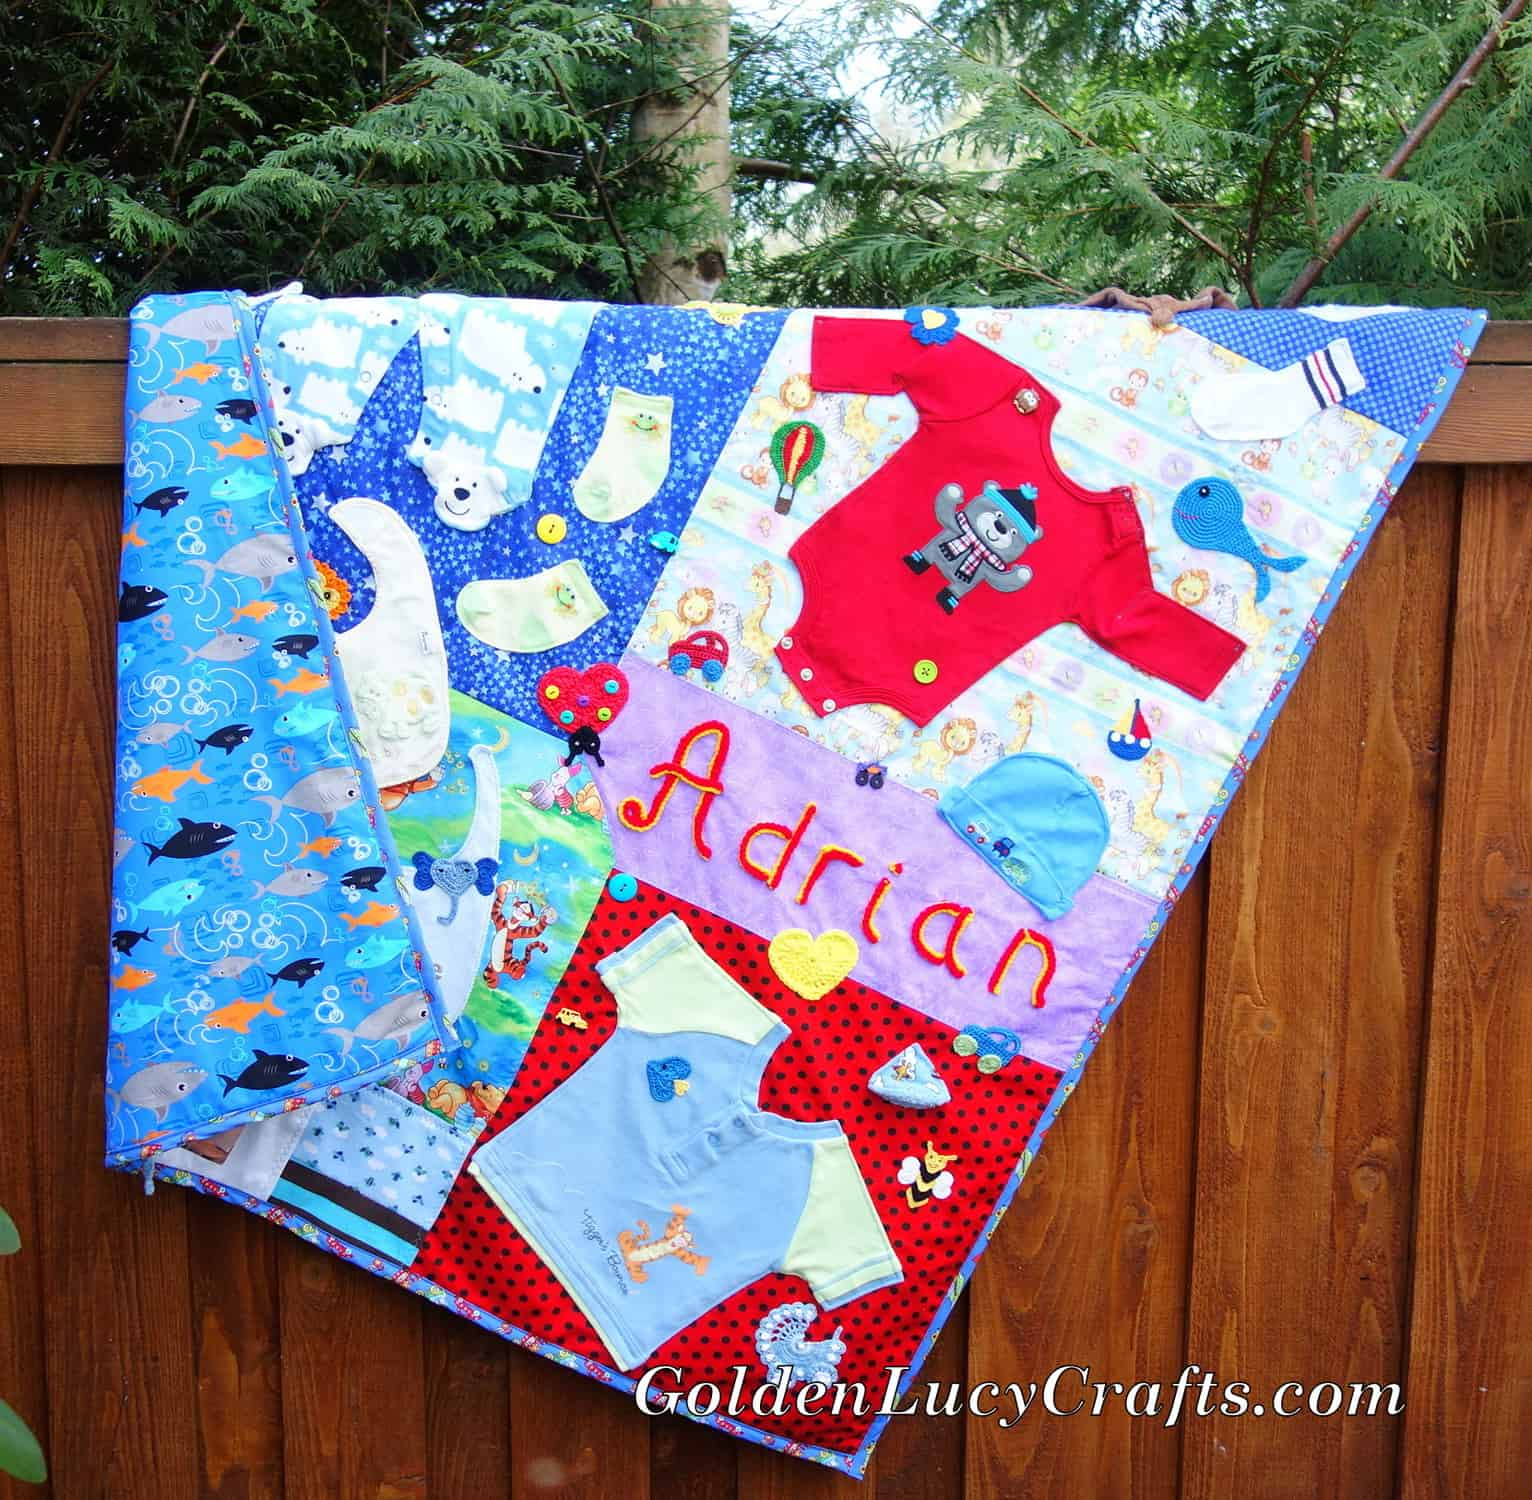 Baby Clothes Memory Quilt Goldenlucycrafts